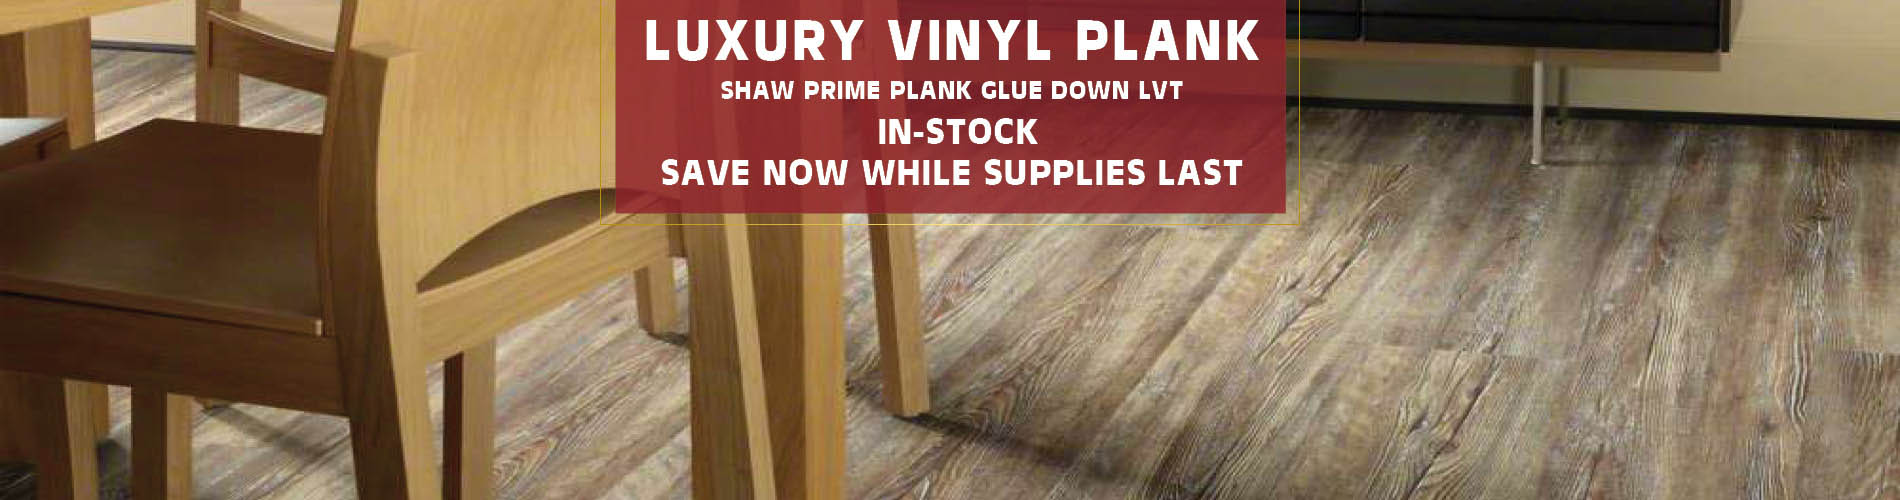 Shaw prime Luxury Vinyl Plank glue-down LVT in-stock!  Save now while supplies last!